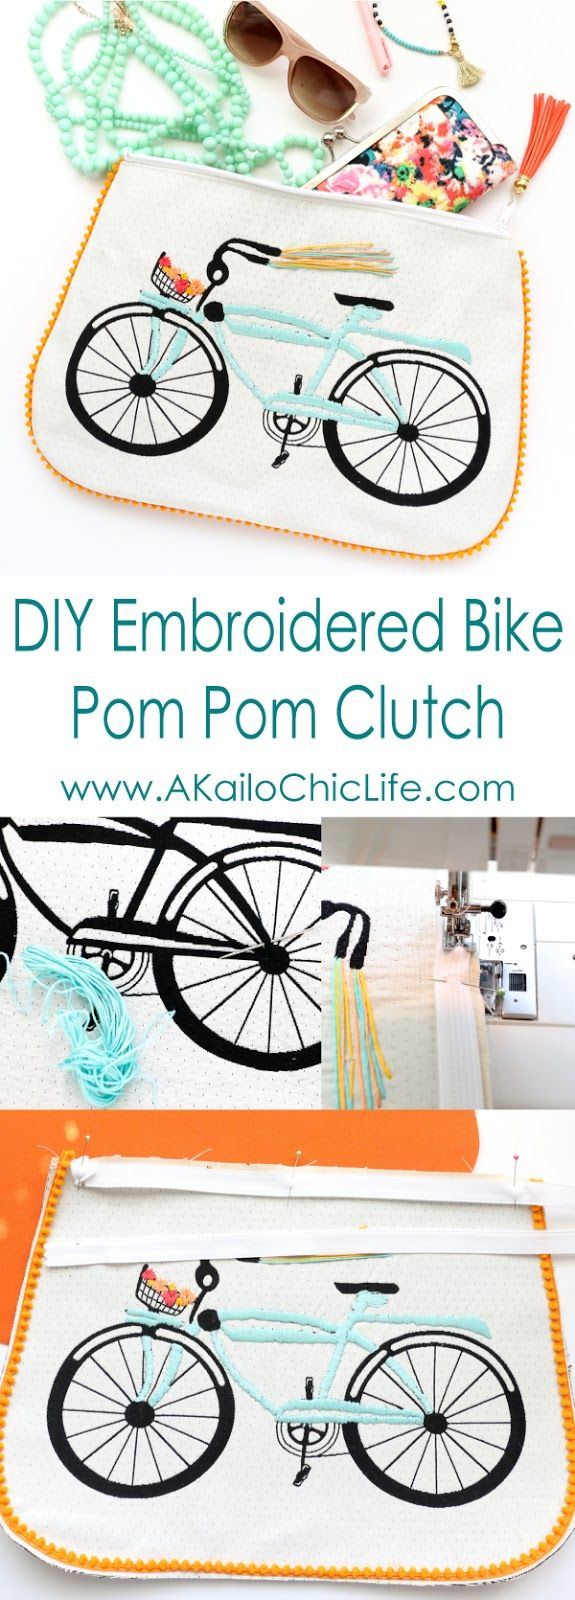 Sew It - An Embroidered Bike Pom Pom Clutch